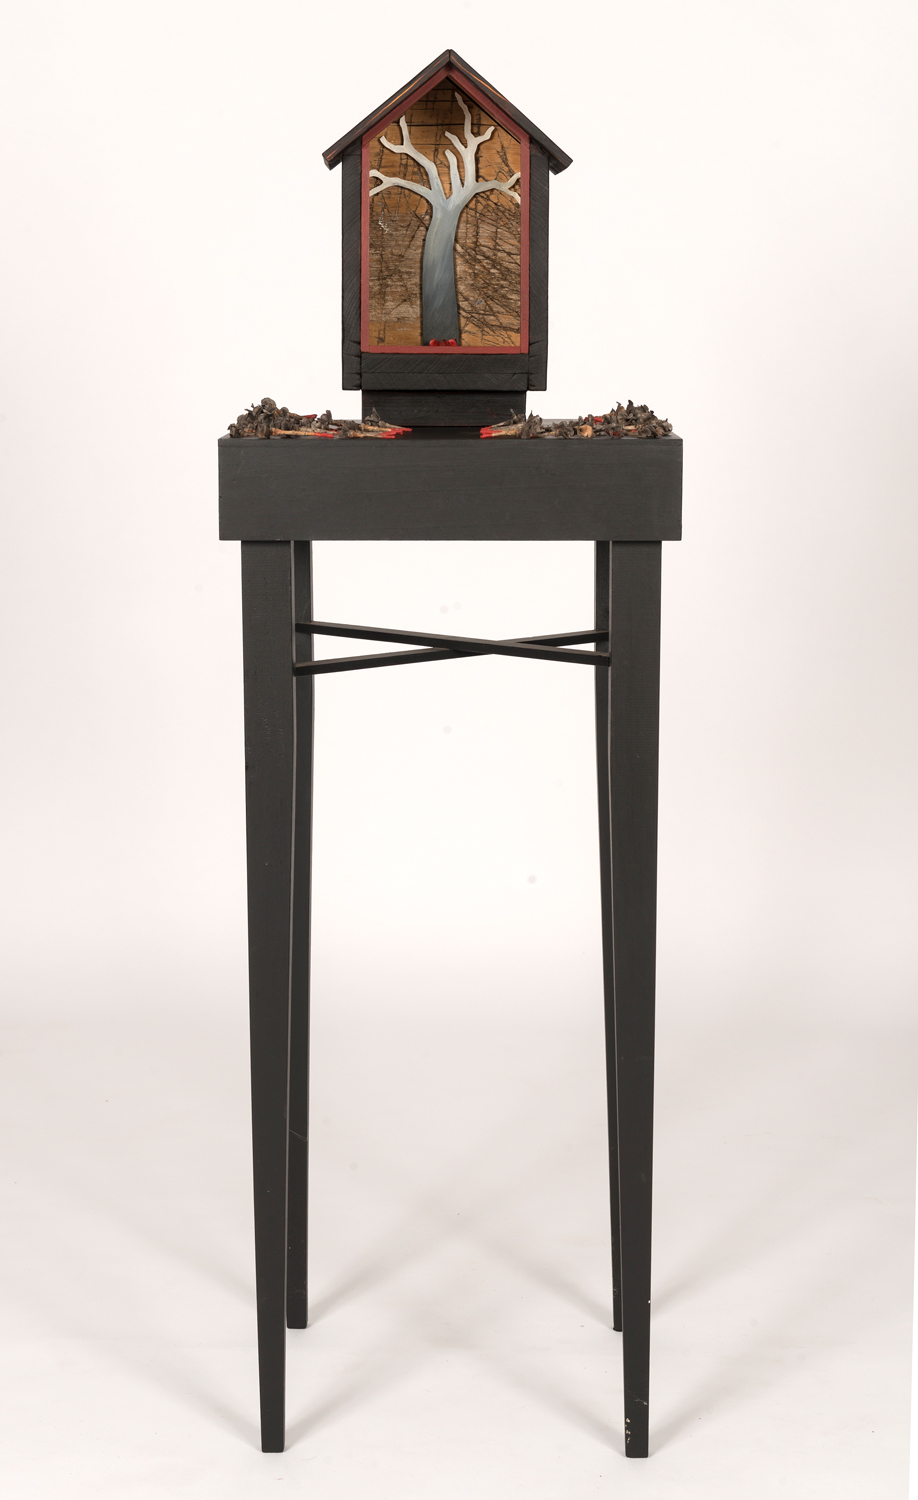 30. Peggy Lyon, 'Shrine', Timber, found objects, acrylic paint, 2011, dimensions variable, On loan from a Private Collection  Photographer Eva Fernandez